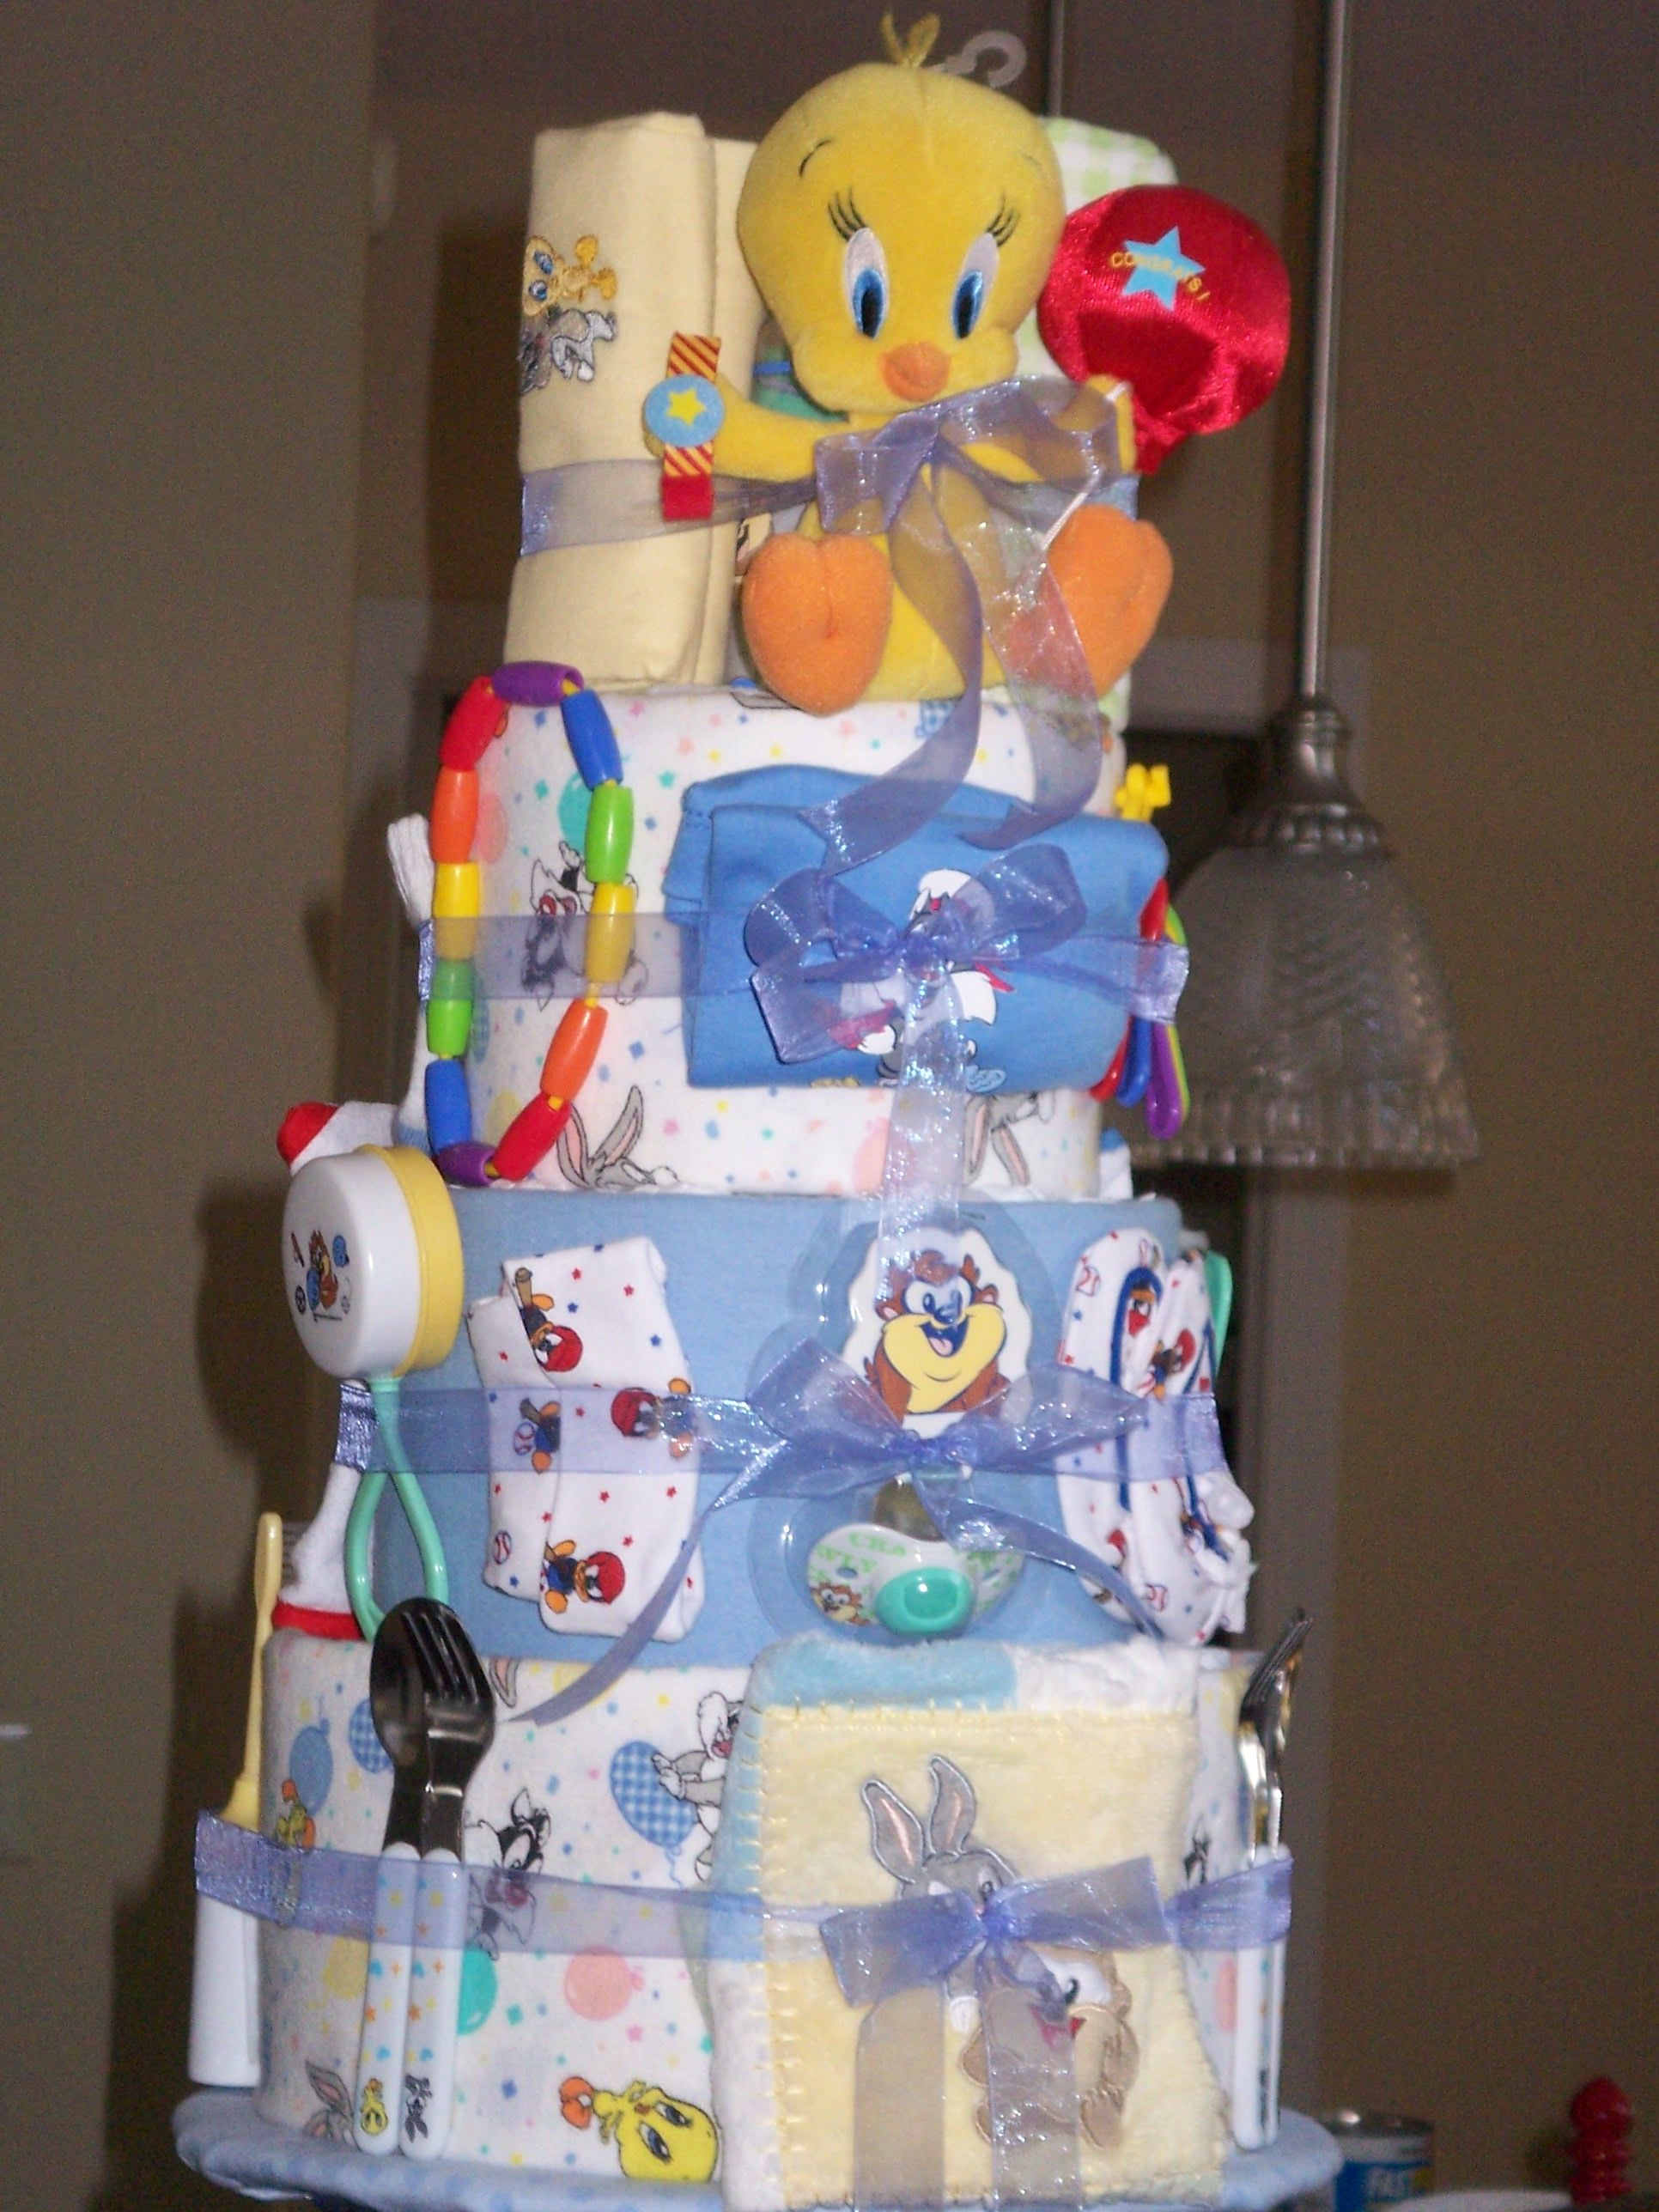 Baby Looney Toons Baby Shower Theme : looney, toons, shower, theme, Looney, Tunes, Diaper, Bunny, Shower, Theme,, Theme, Decorations,